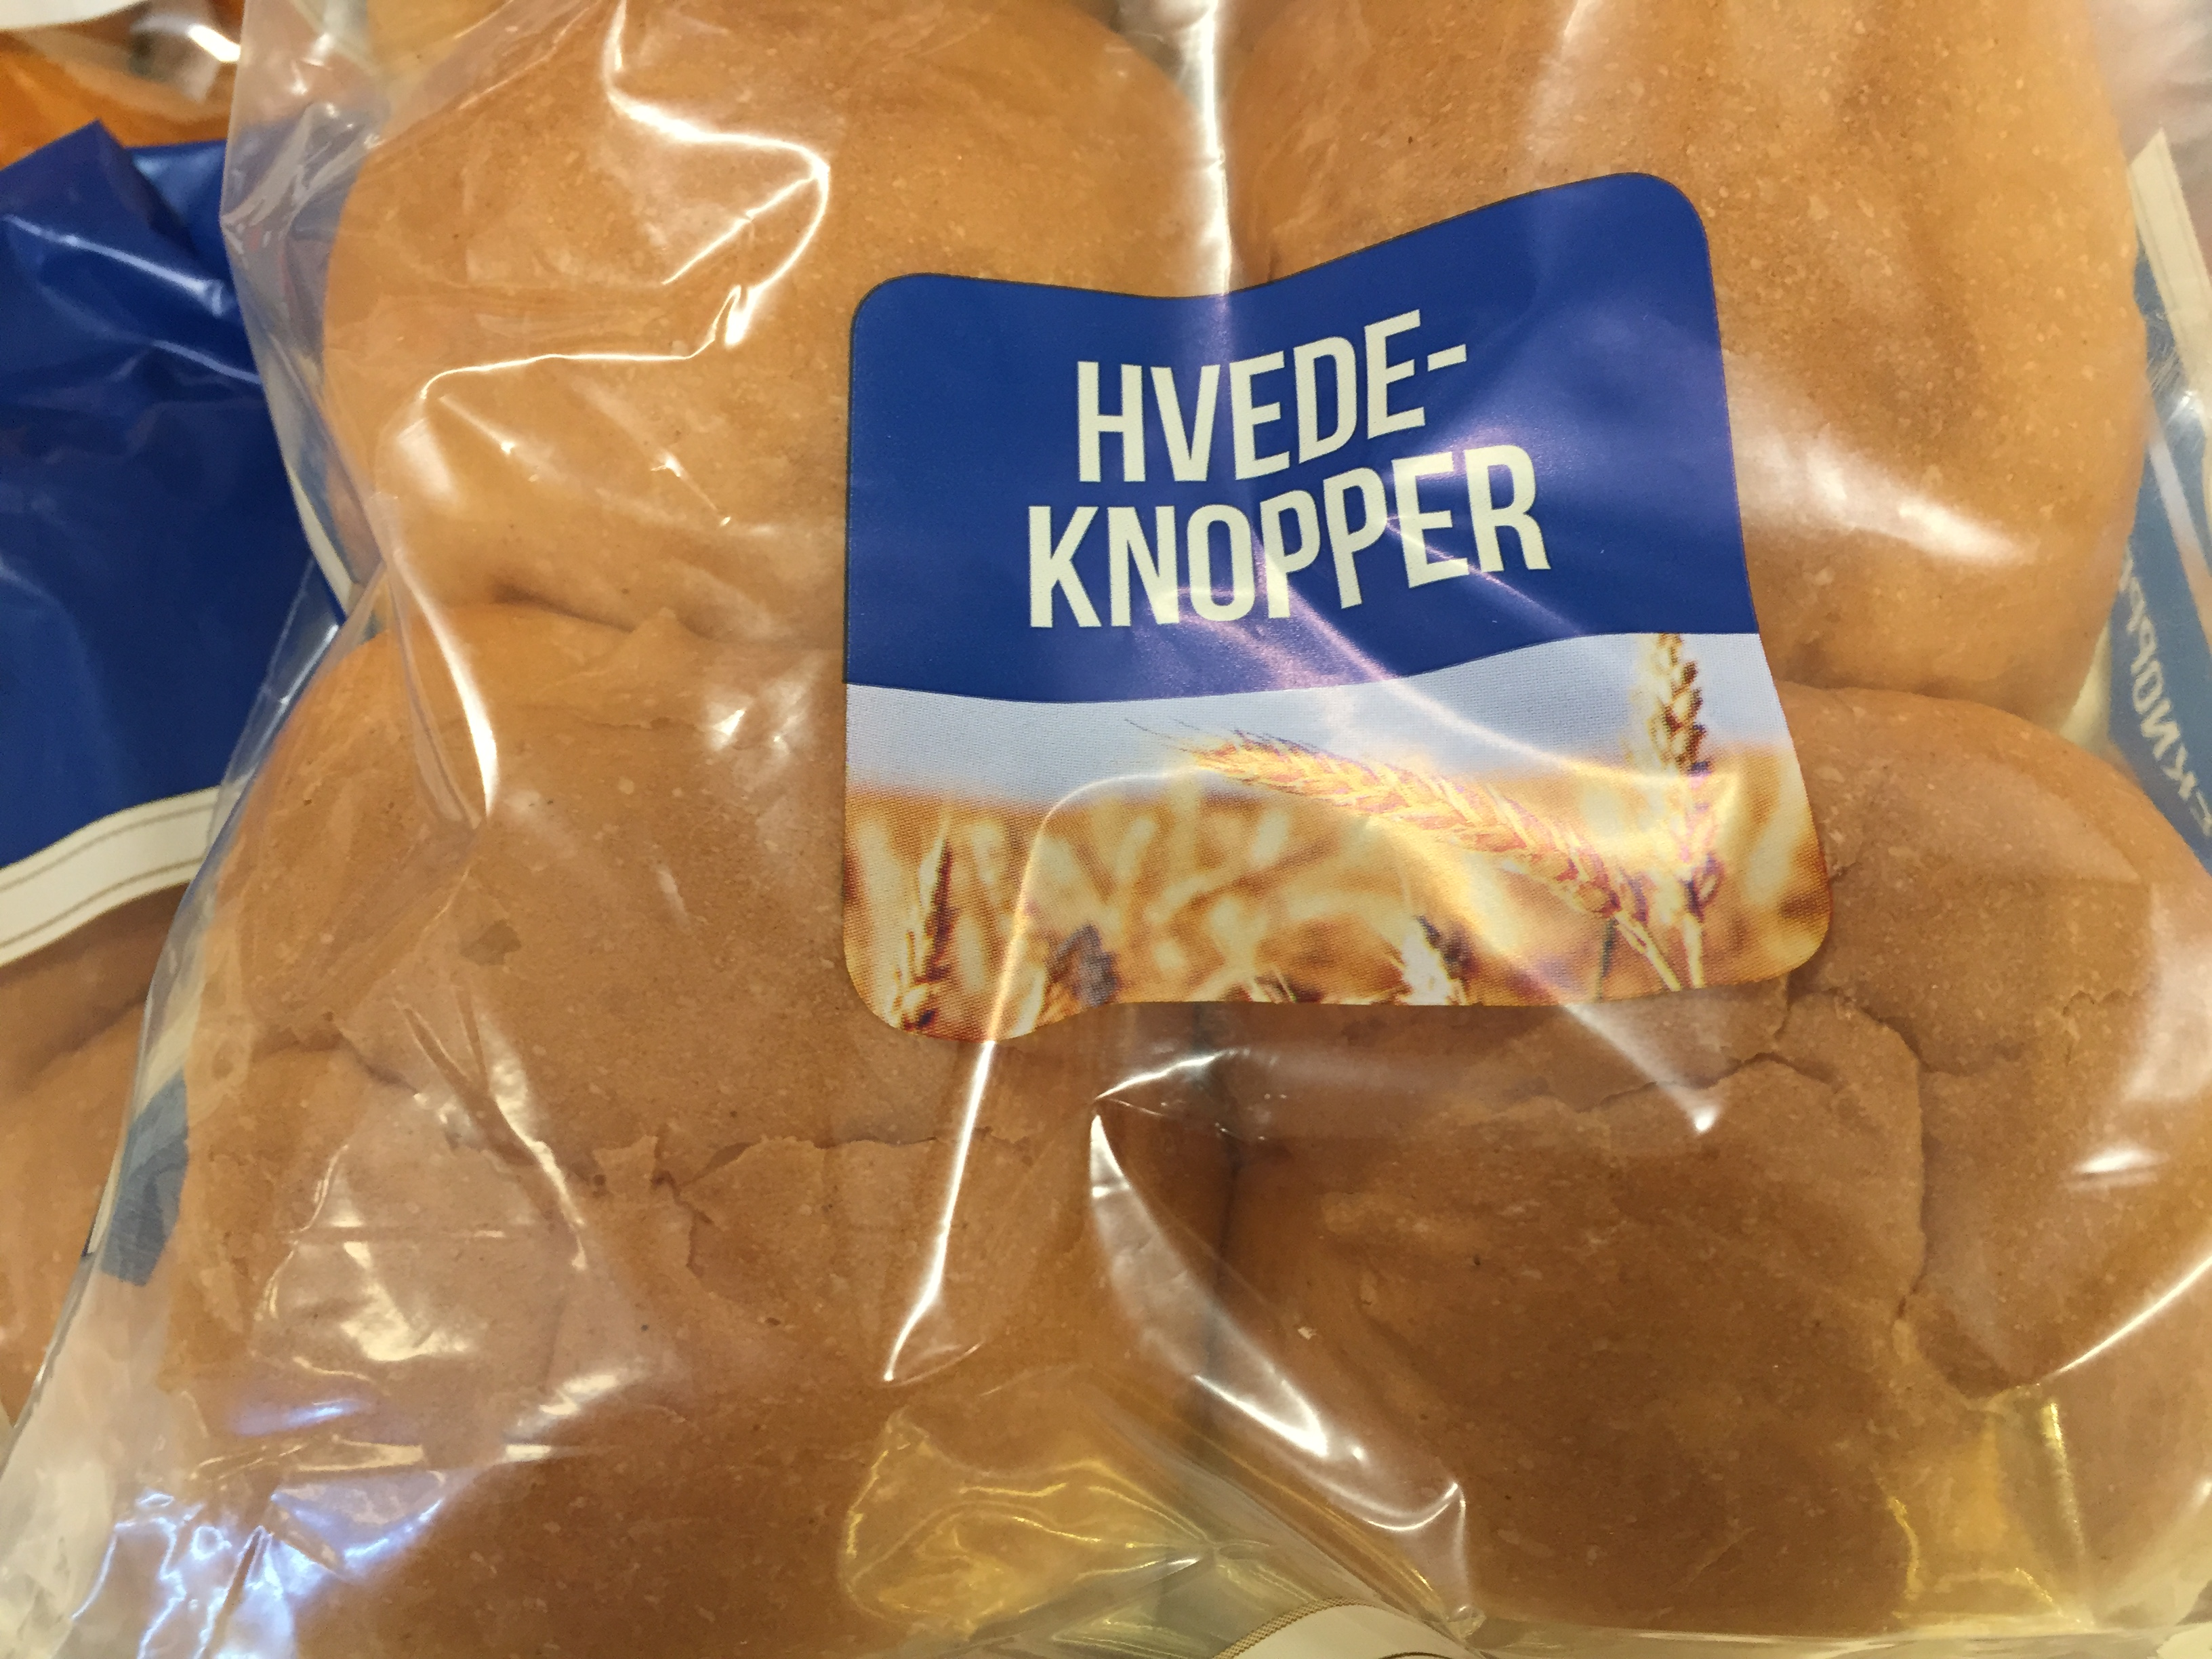 Remember To Buy Your Wheat Bun Look For Hvedeknopper Or Hveder